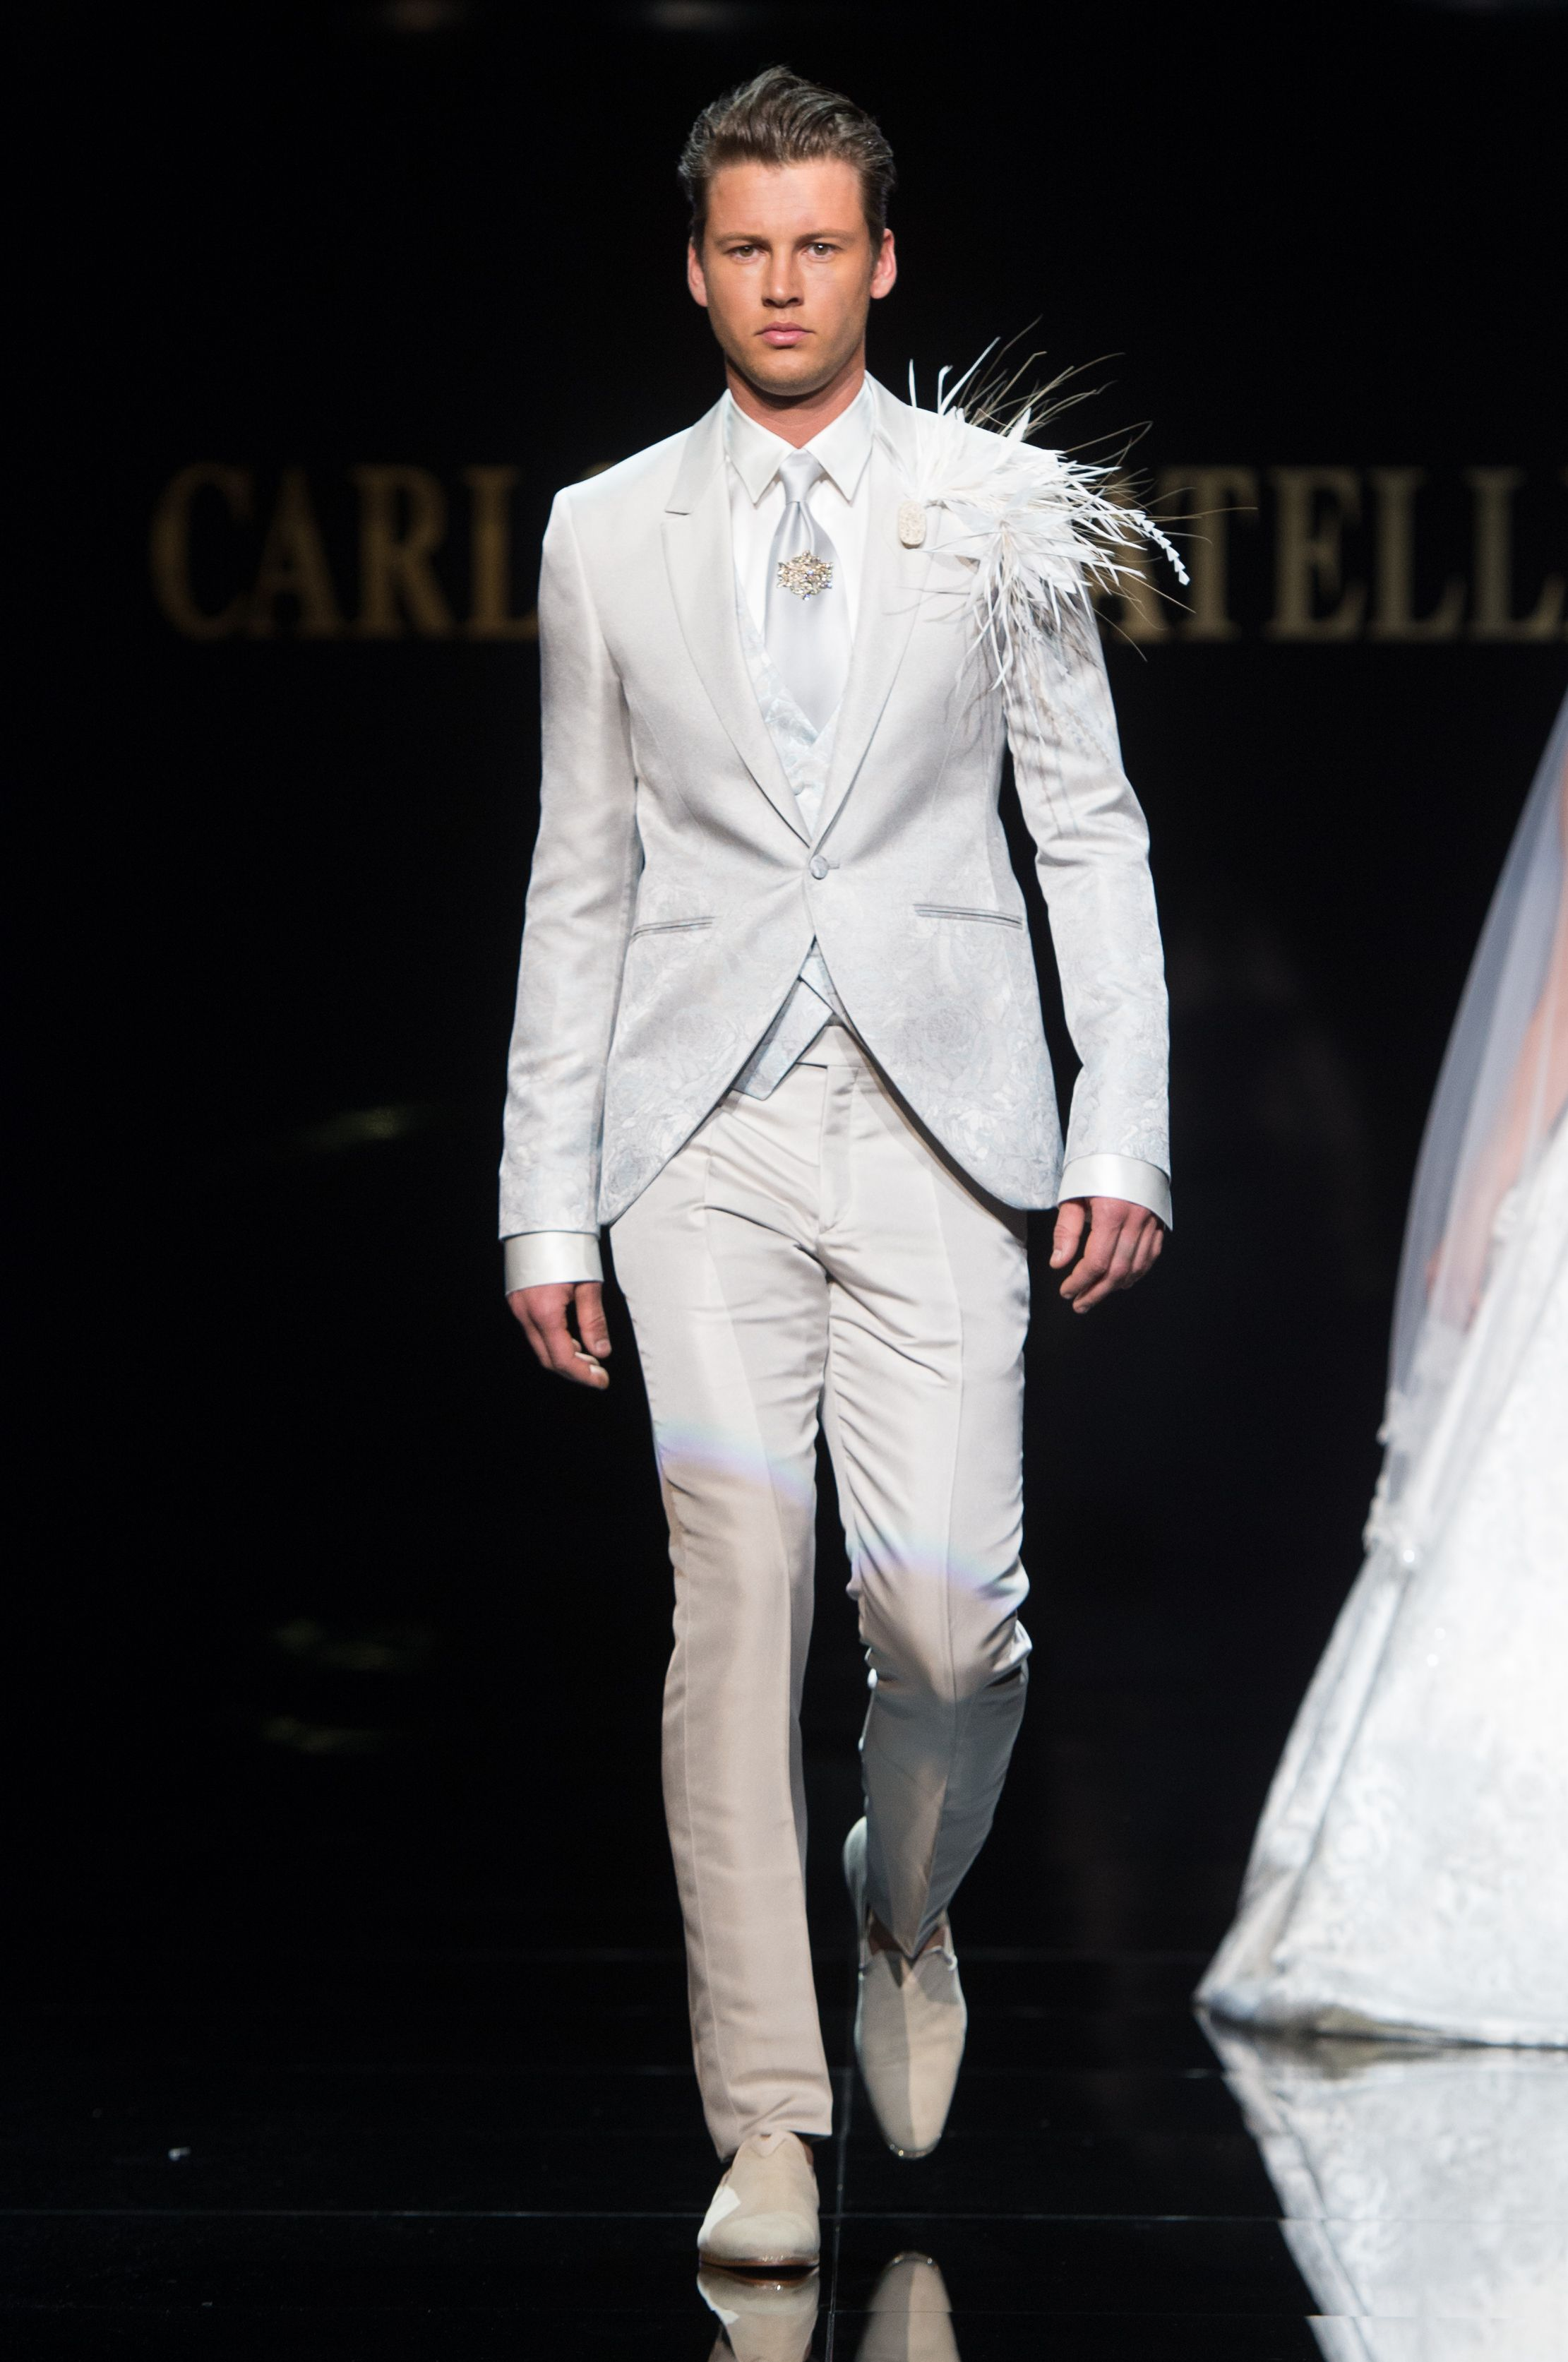 Carlo pignatelli fashion show wedding fashionshow groom